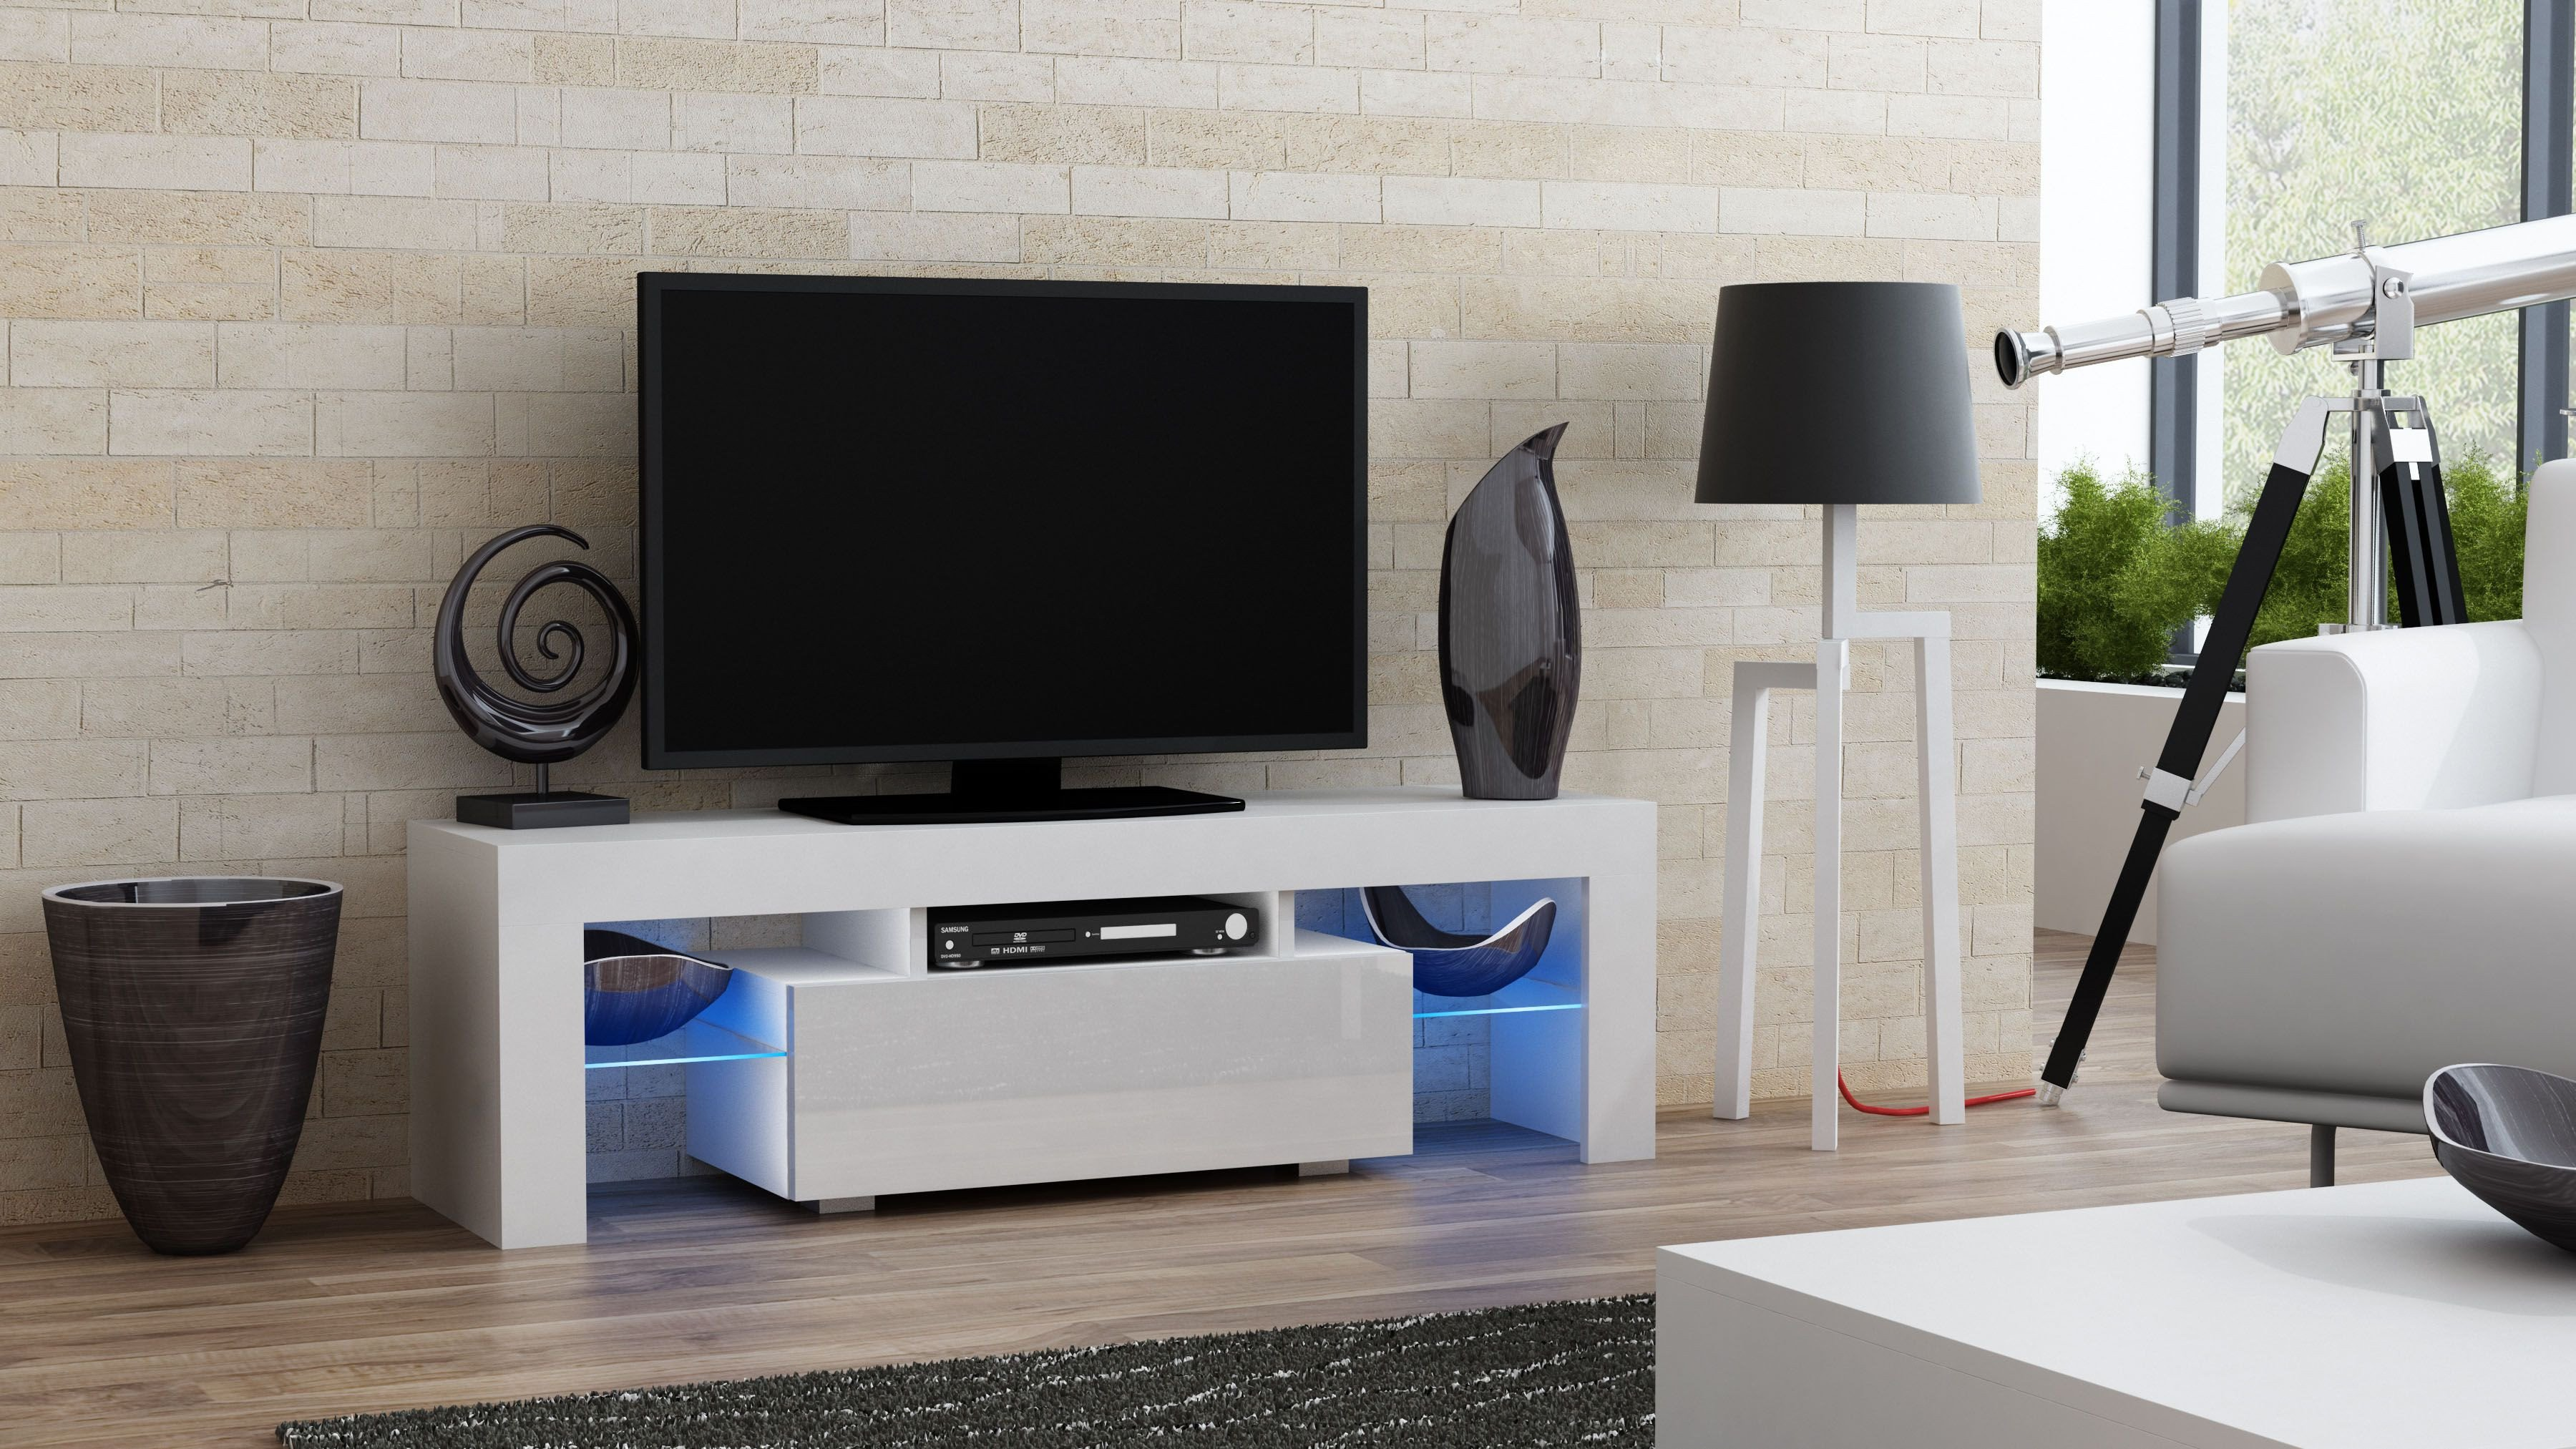 Tall Tv Stand for Bedroom Unique Milano 130 White Small Tv Stand